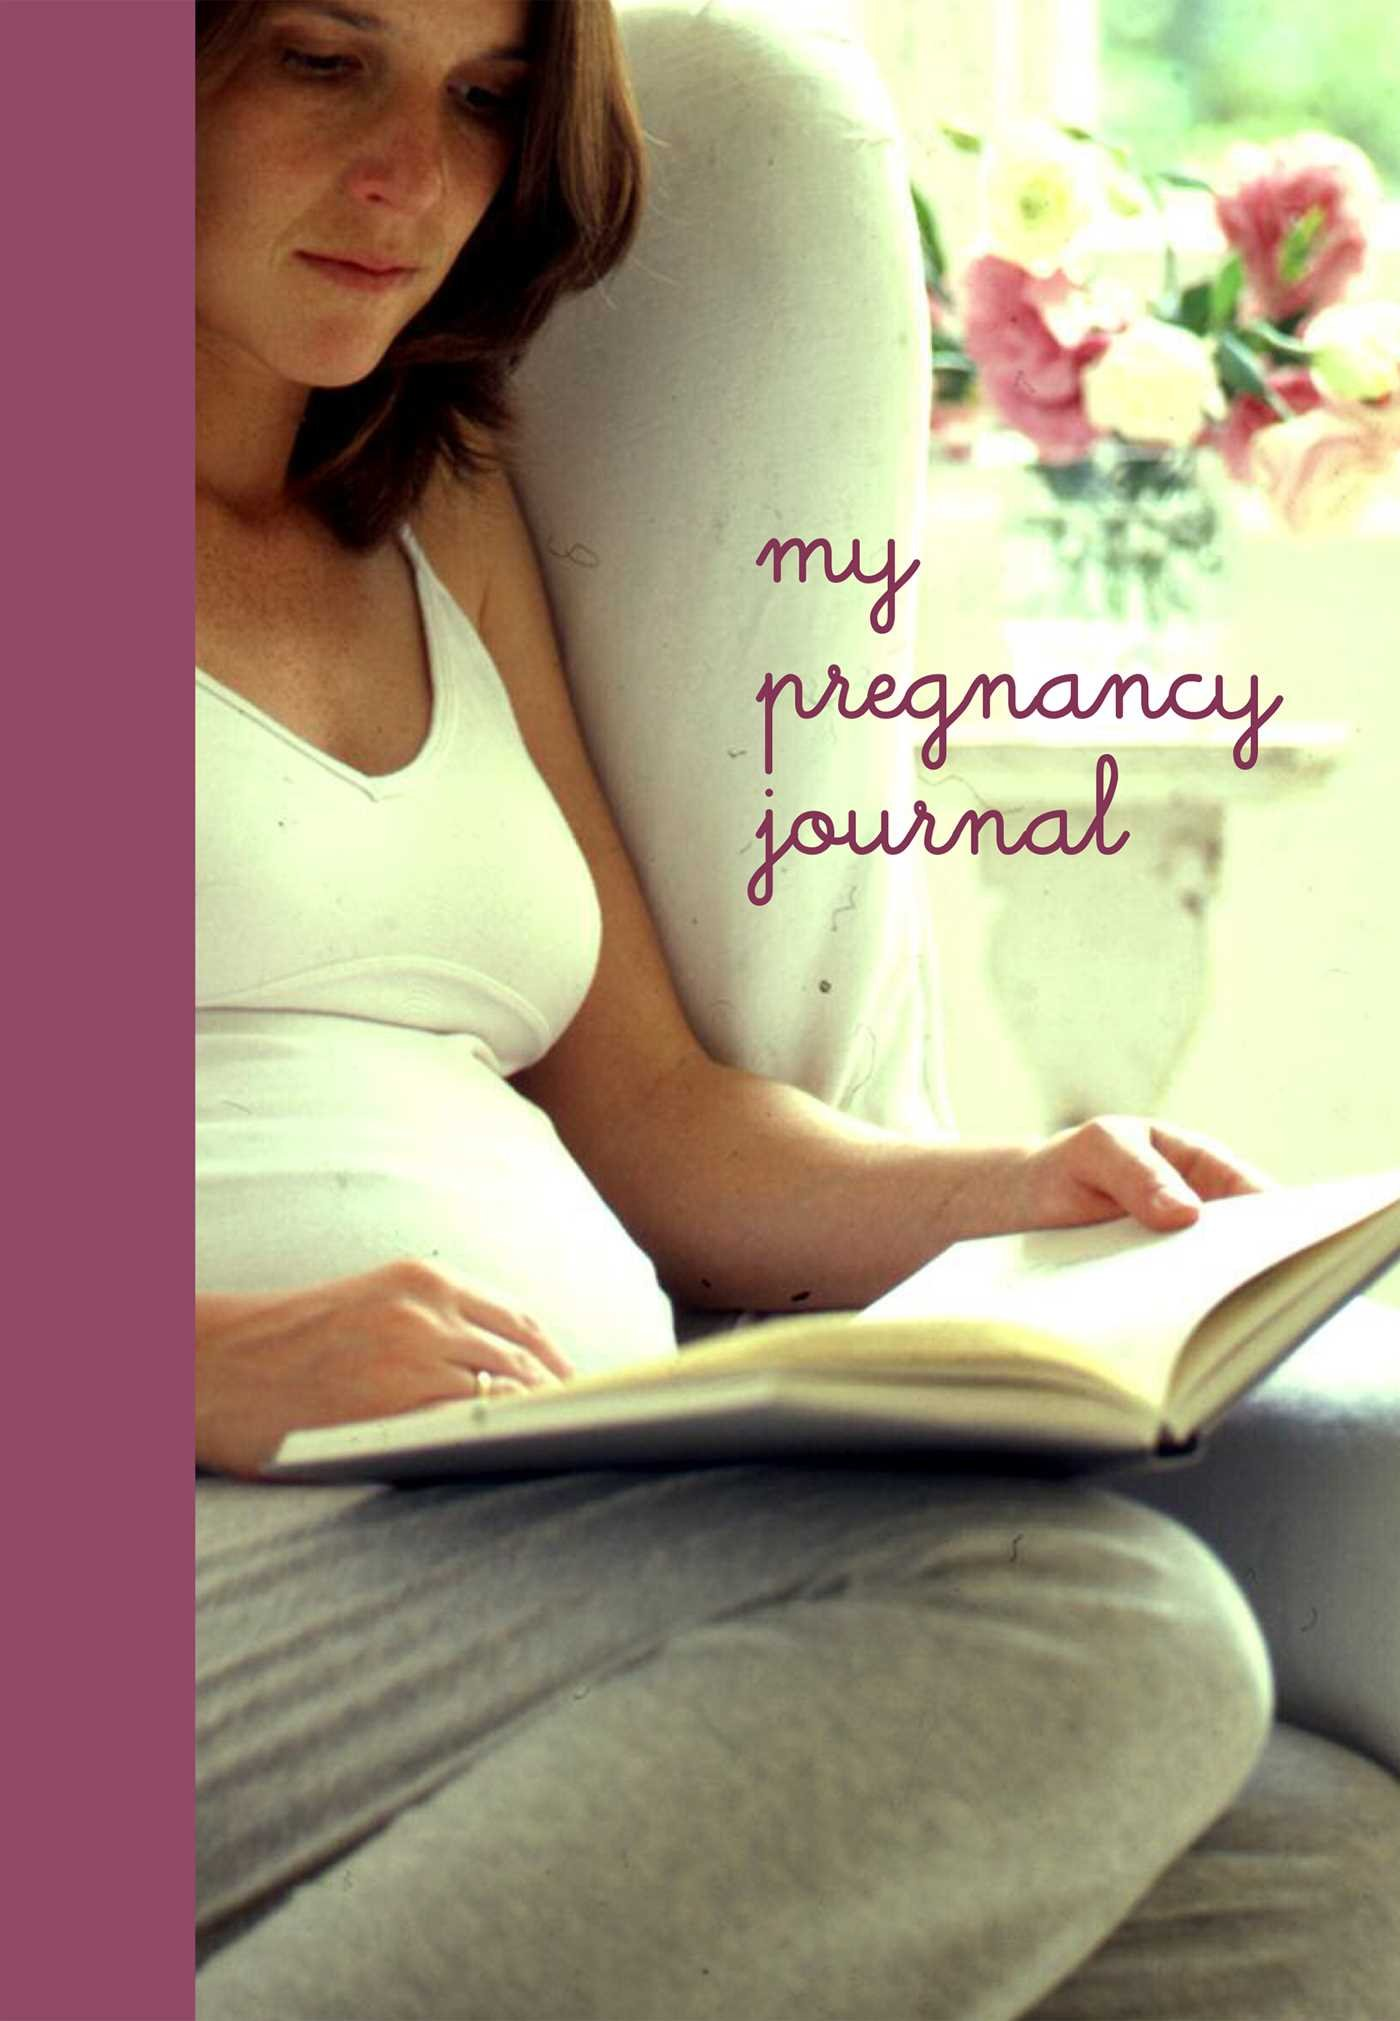 My pregnancy journal ryland peters small 9781841724362 amazon my pregnancy journal ryland peters small 9781841724362 amazon books fandeluxe Gallery